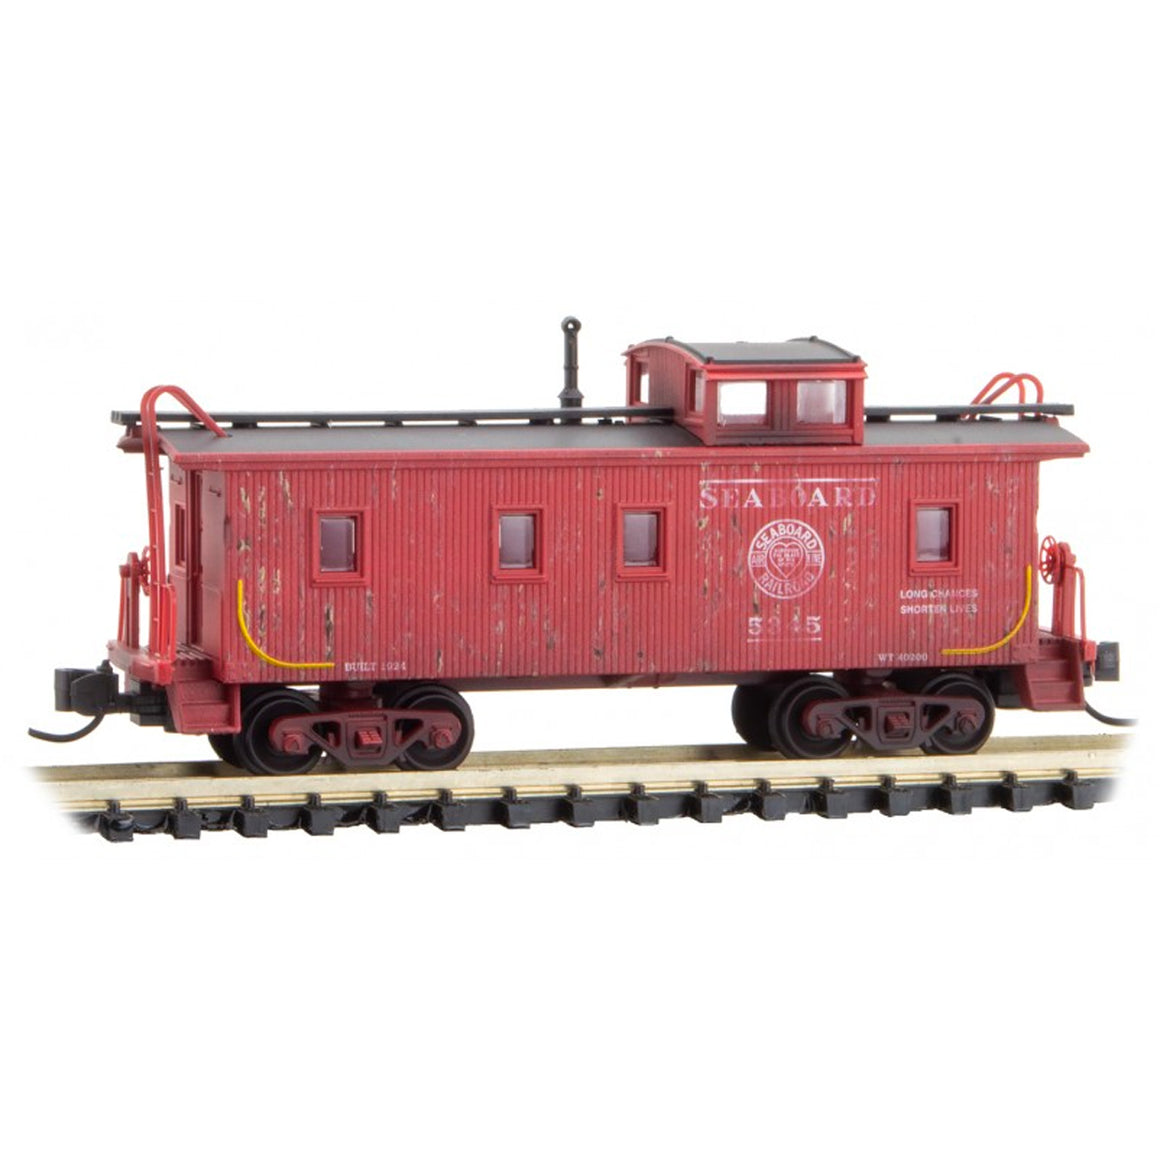 N Scale: 34' Wood Sheathed Caboose - Seaboard - Weathered